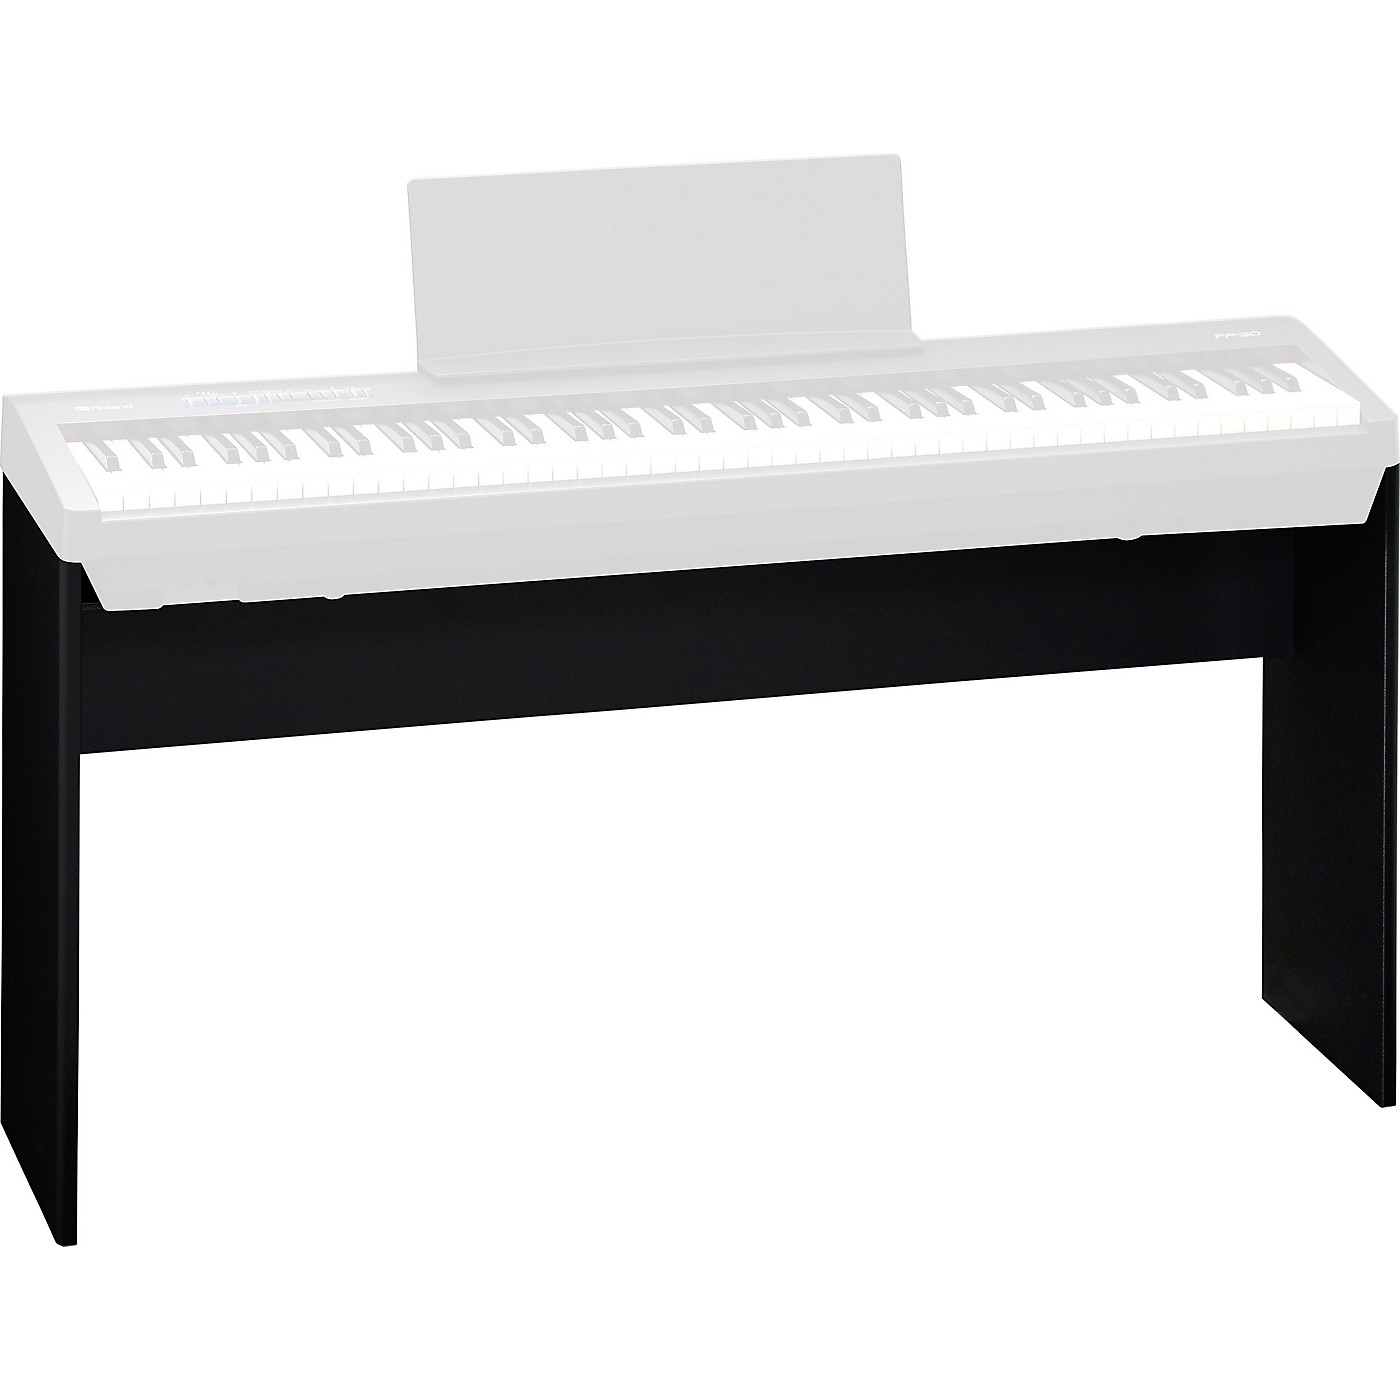 Roland KSC-70 Keyboard Stand for FP-30X thumbnail